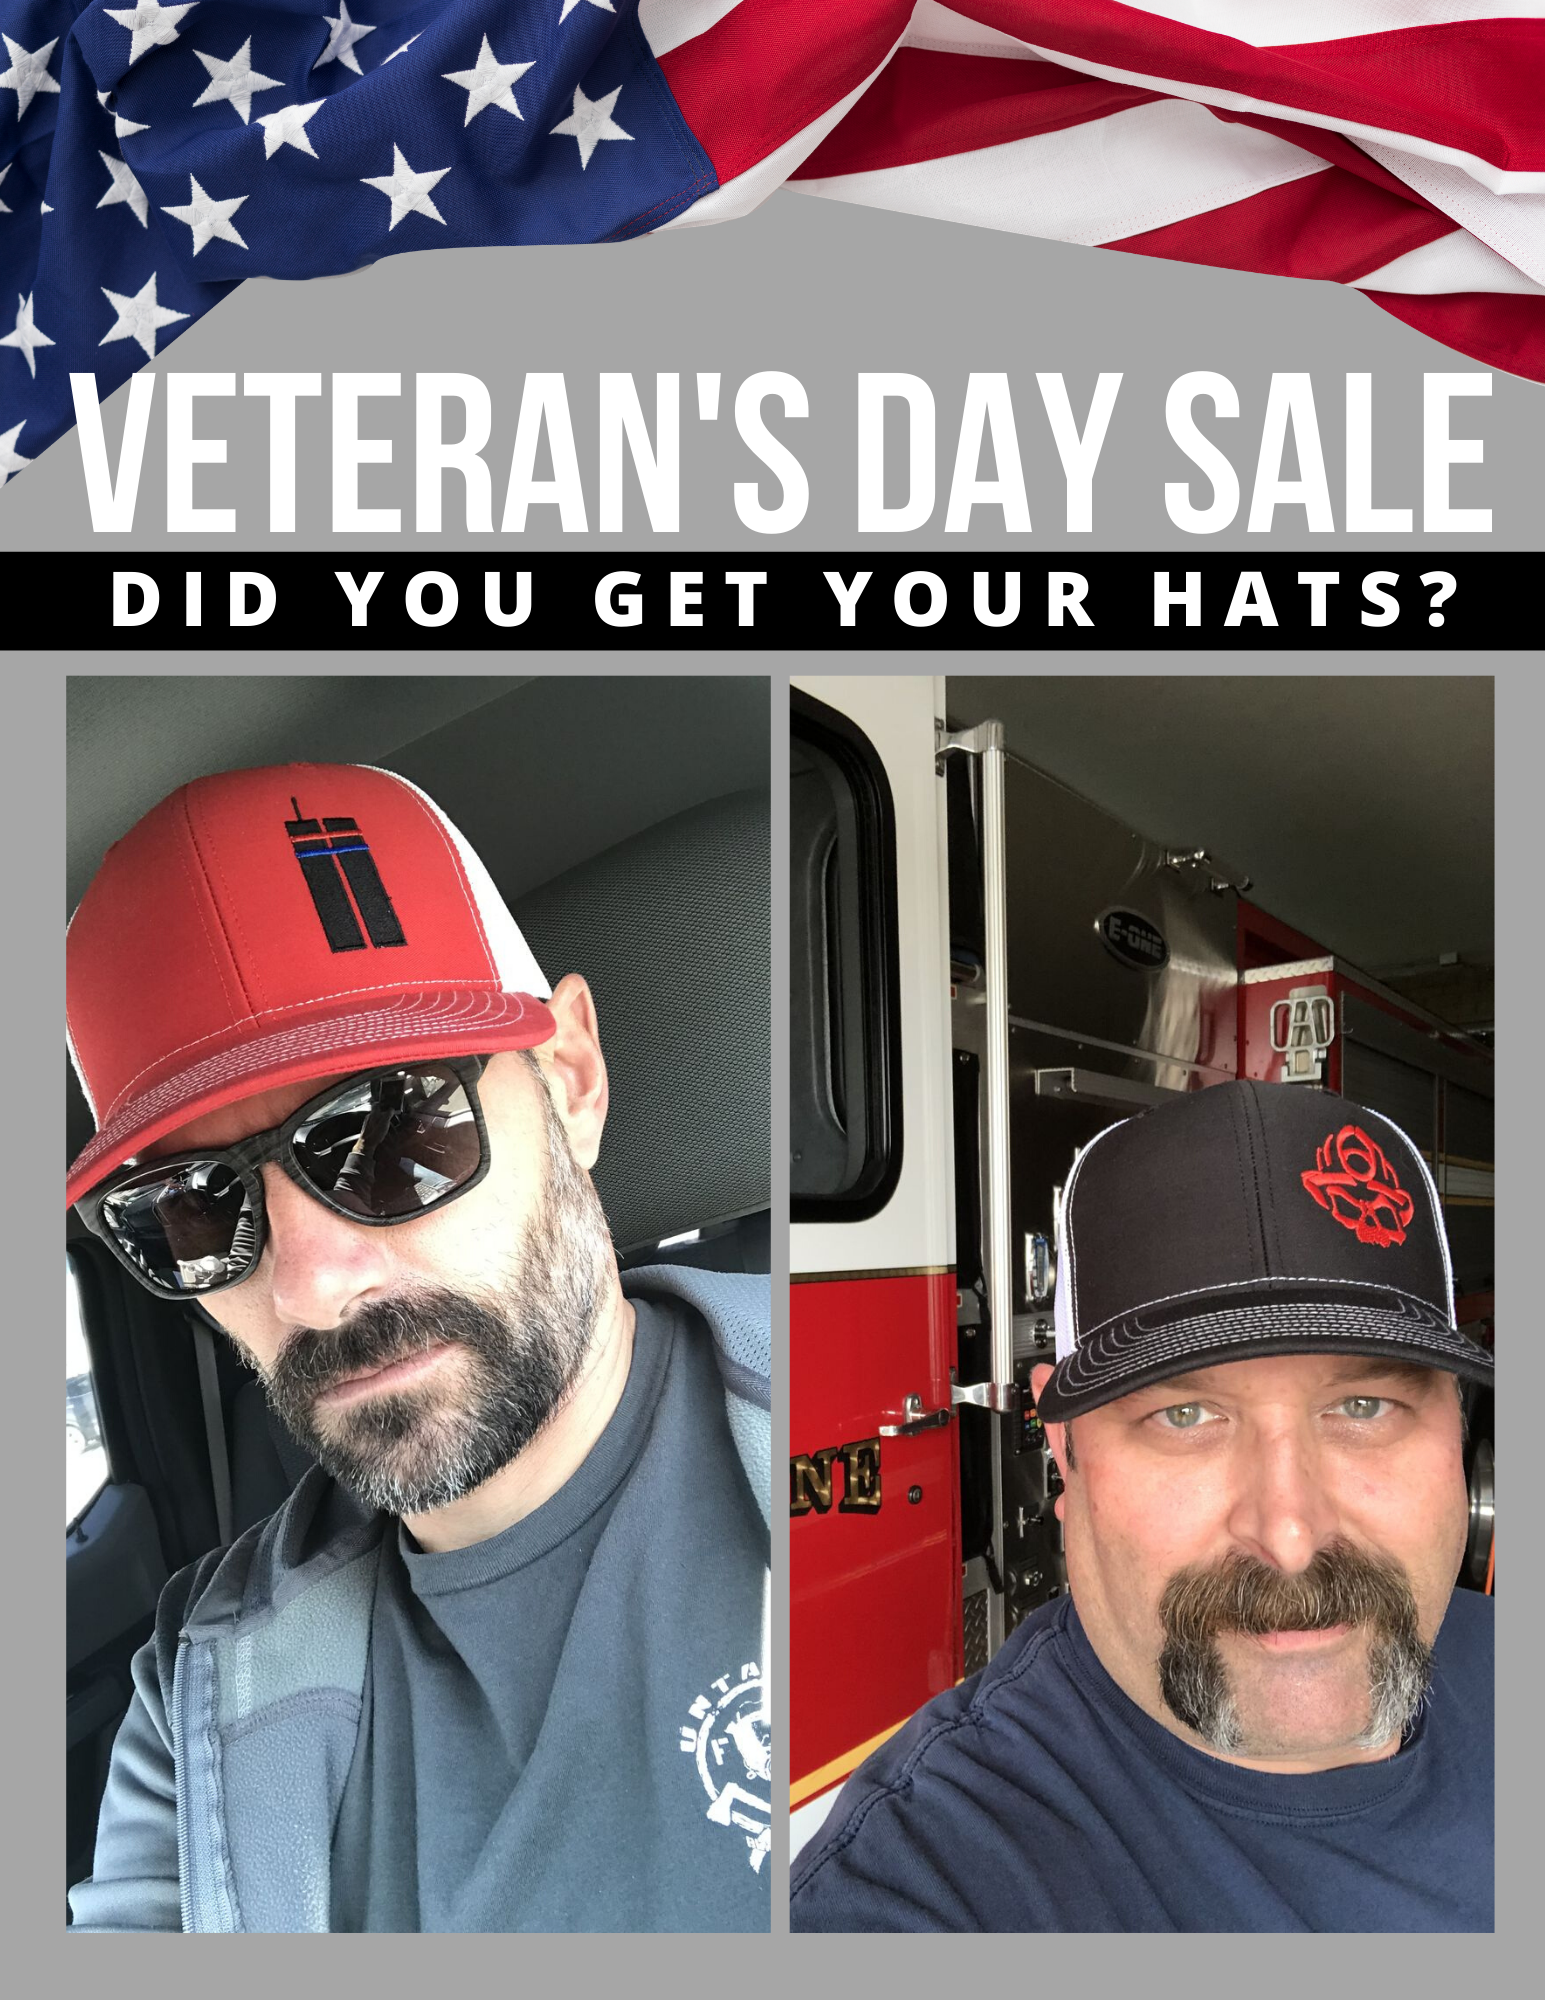 Buy 1, Get 2 FREE Veterans Day Sale (Use Code: VD19)